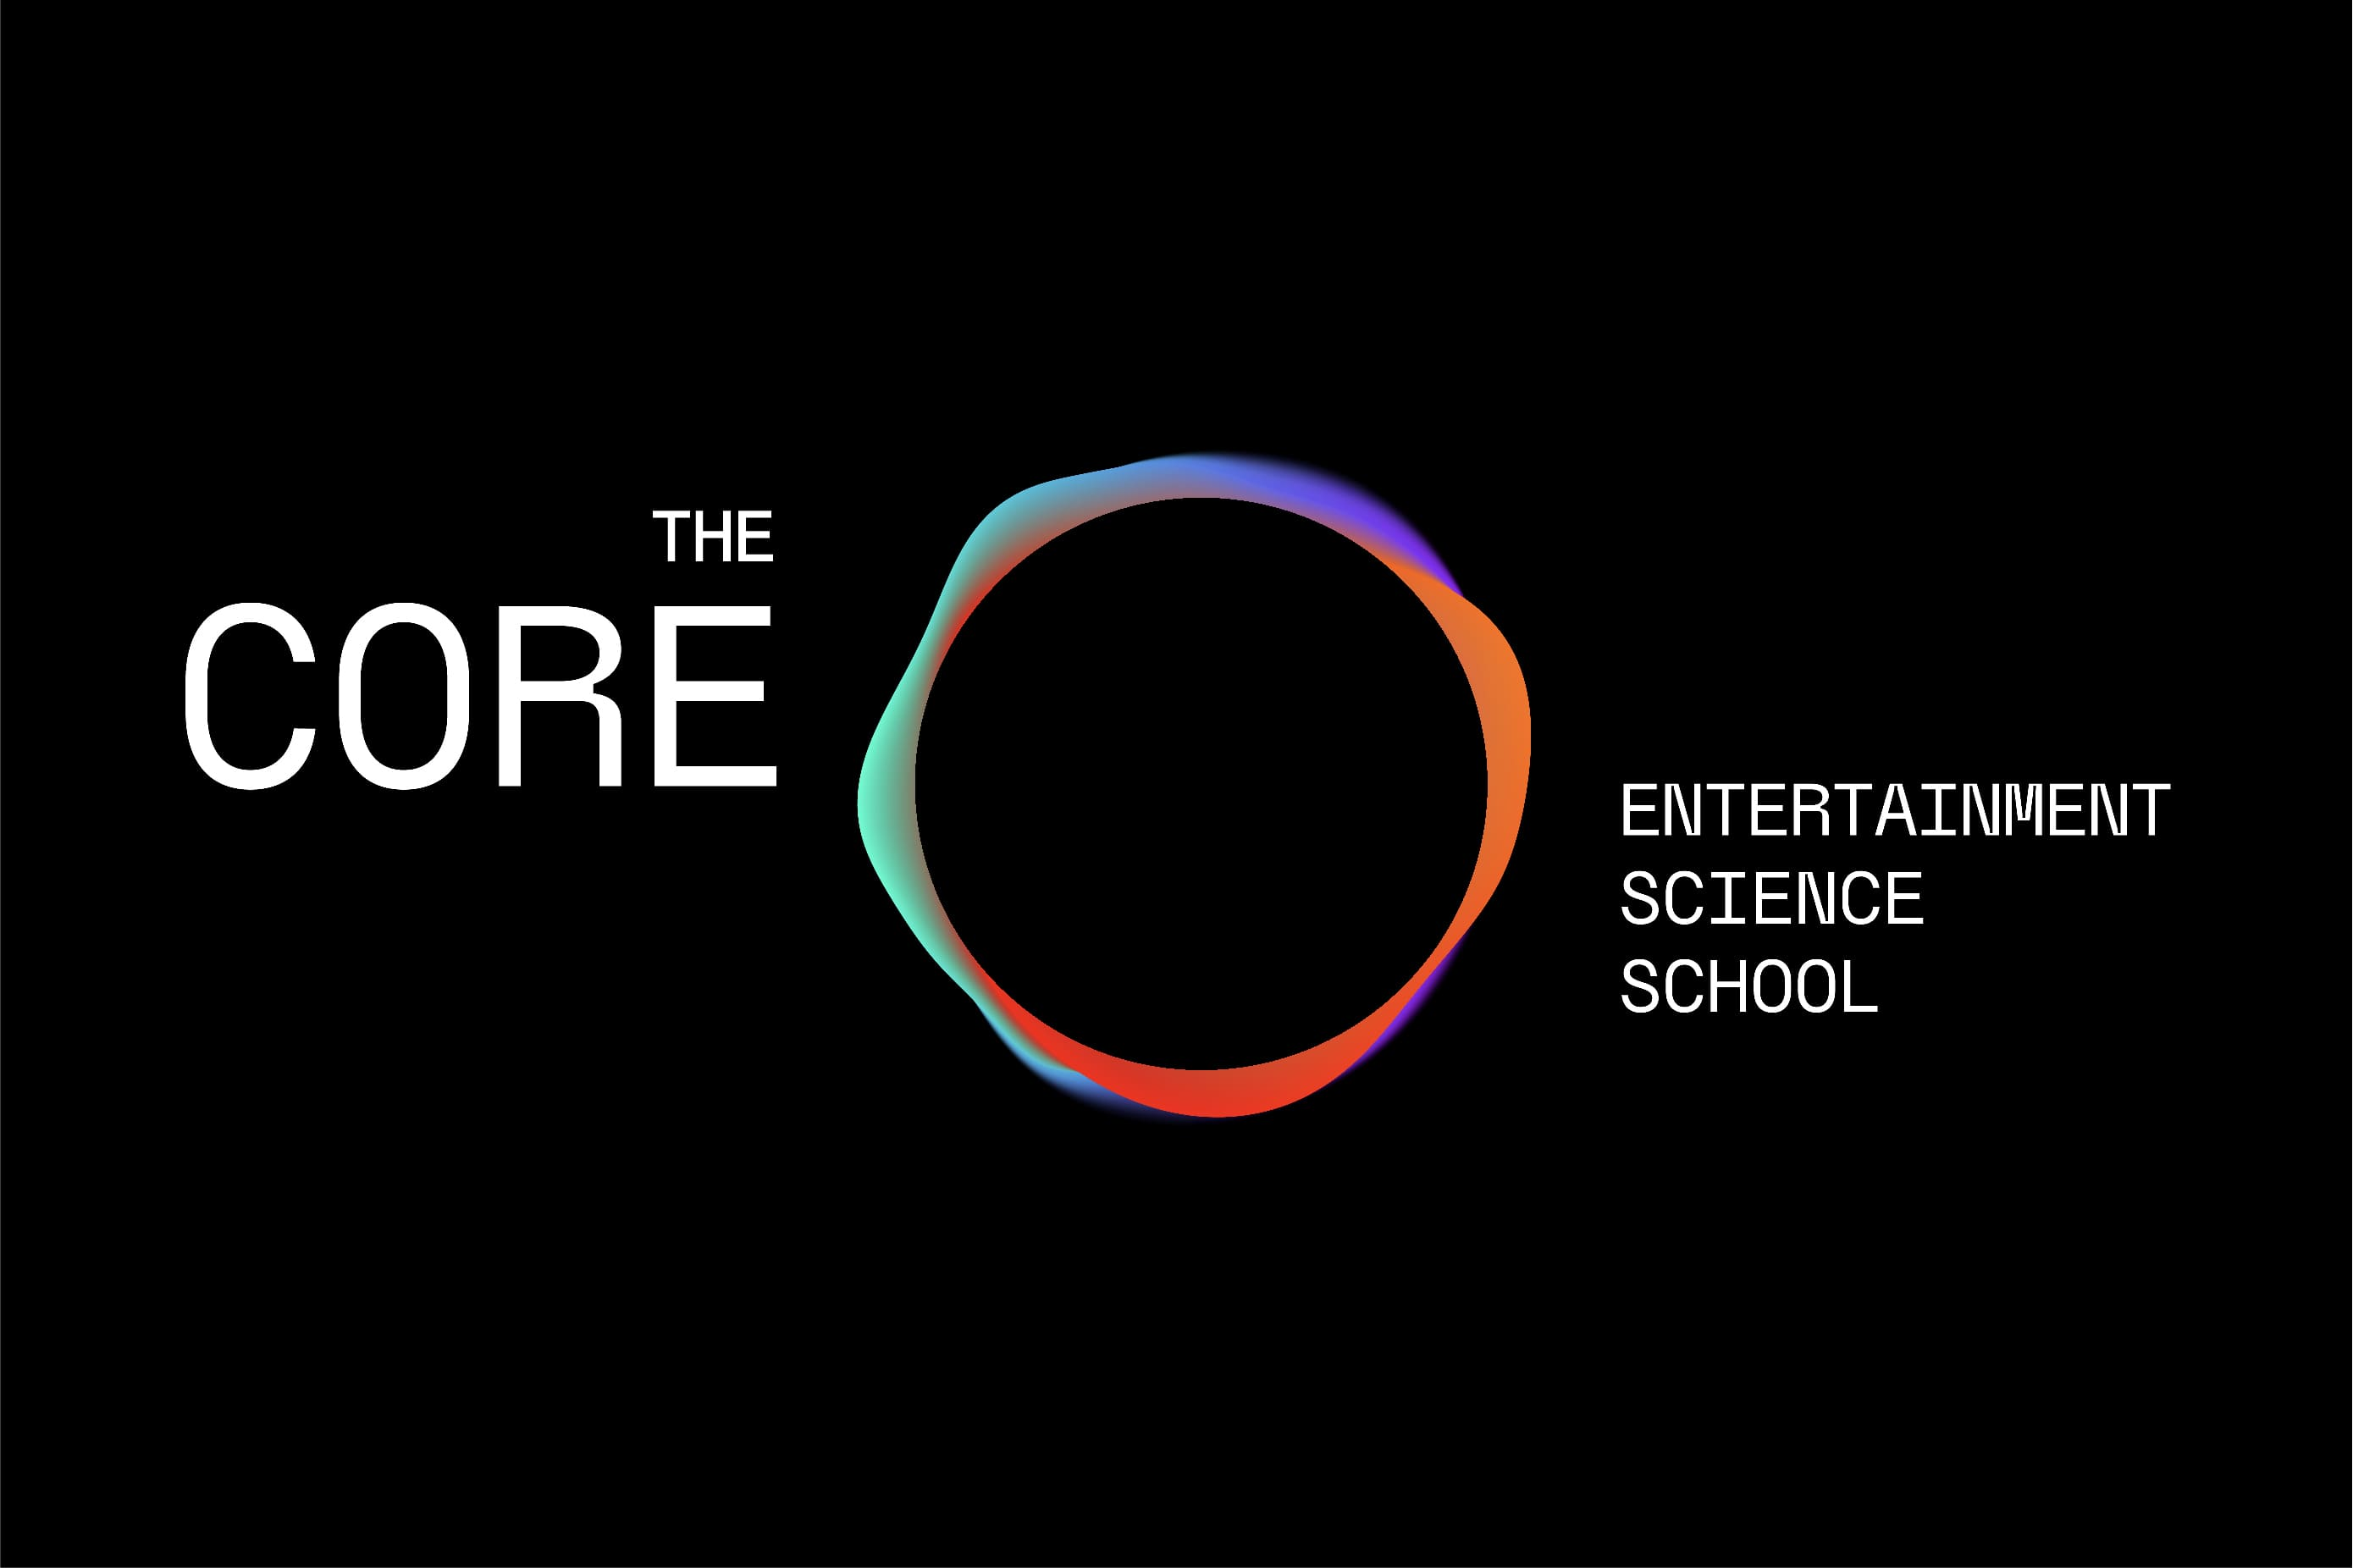 A Notorious Education Brand for a Vibrant Sector Designed by Morillas